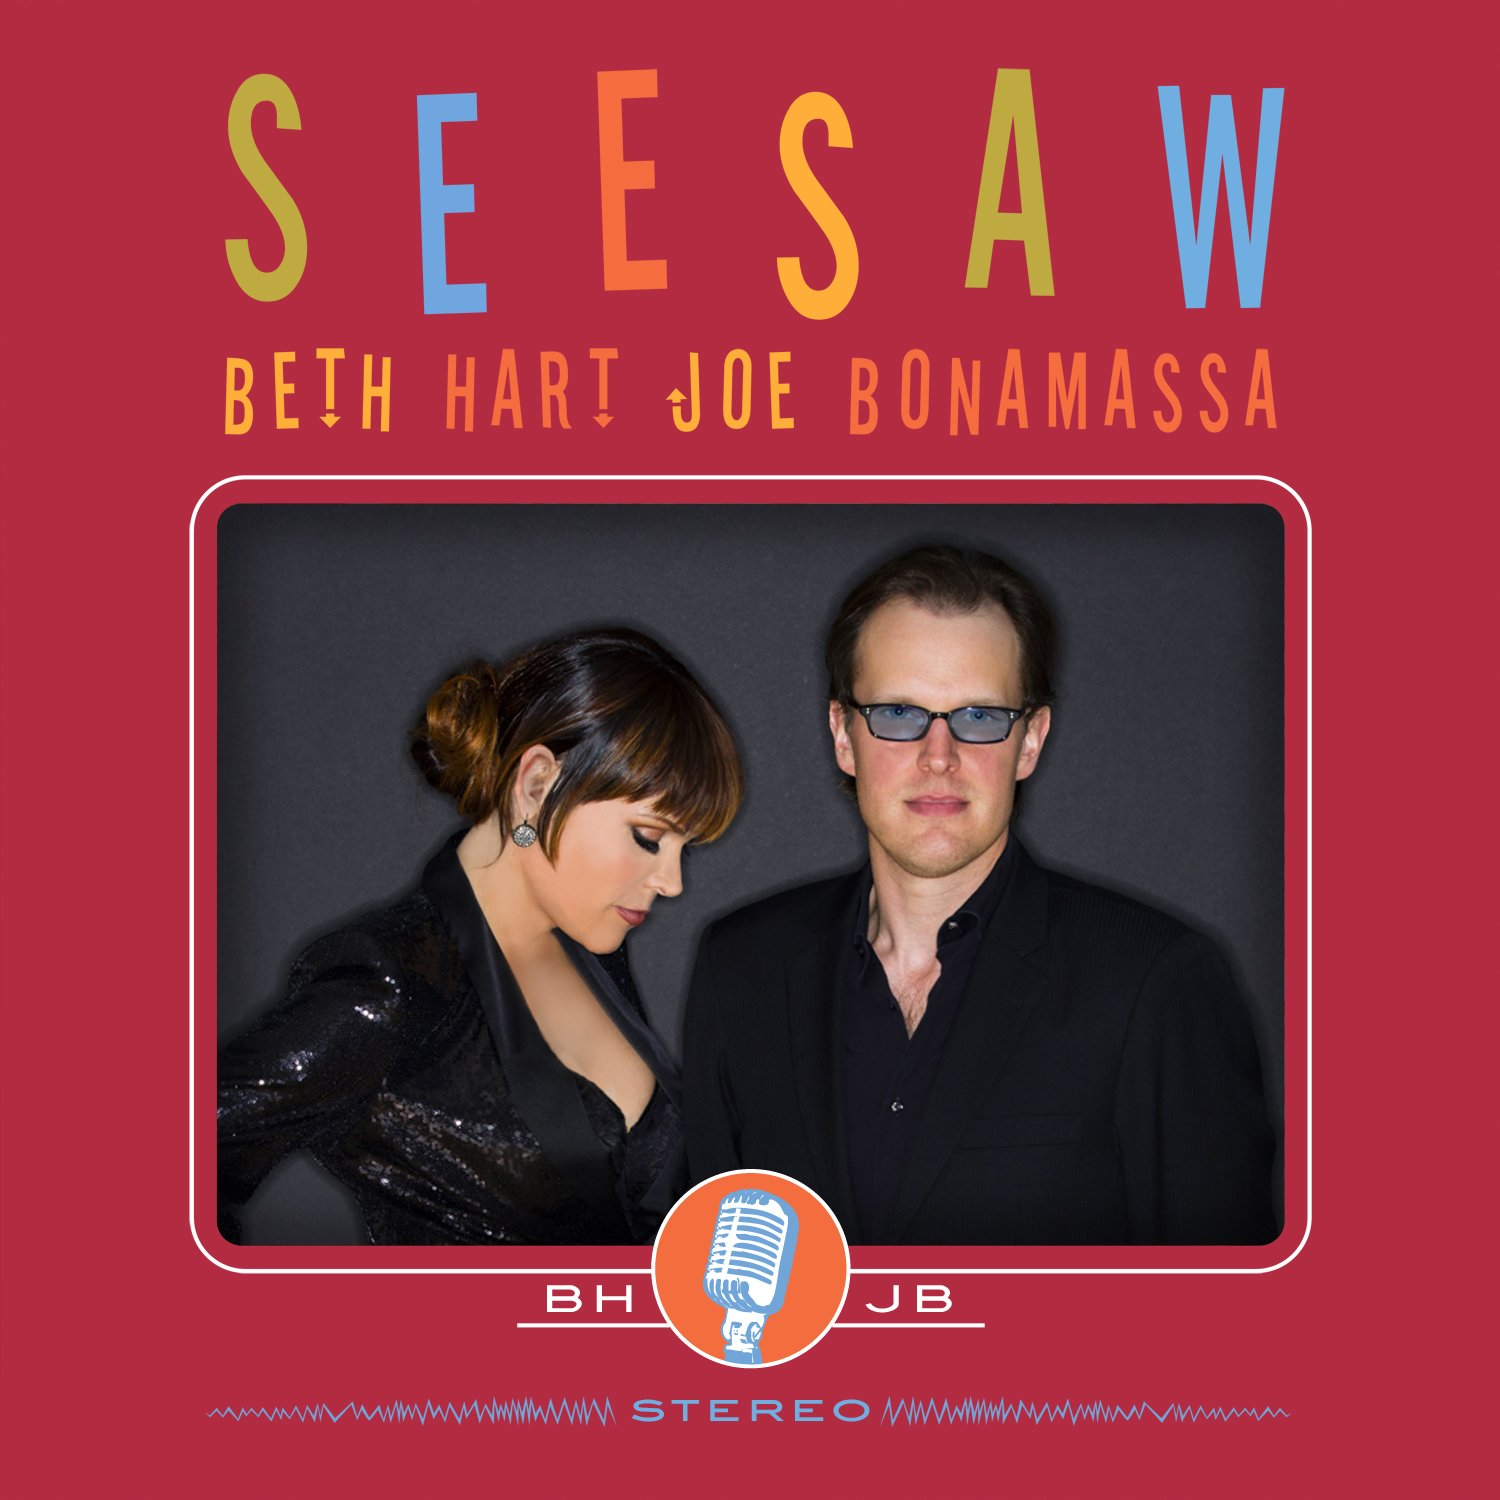 Seesaw is available today!